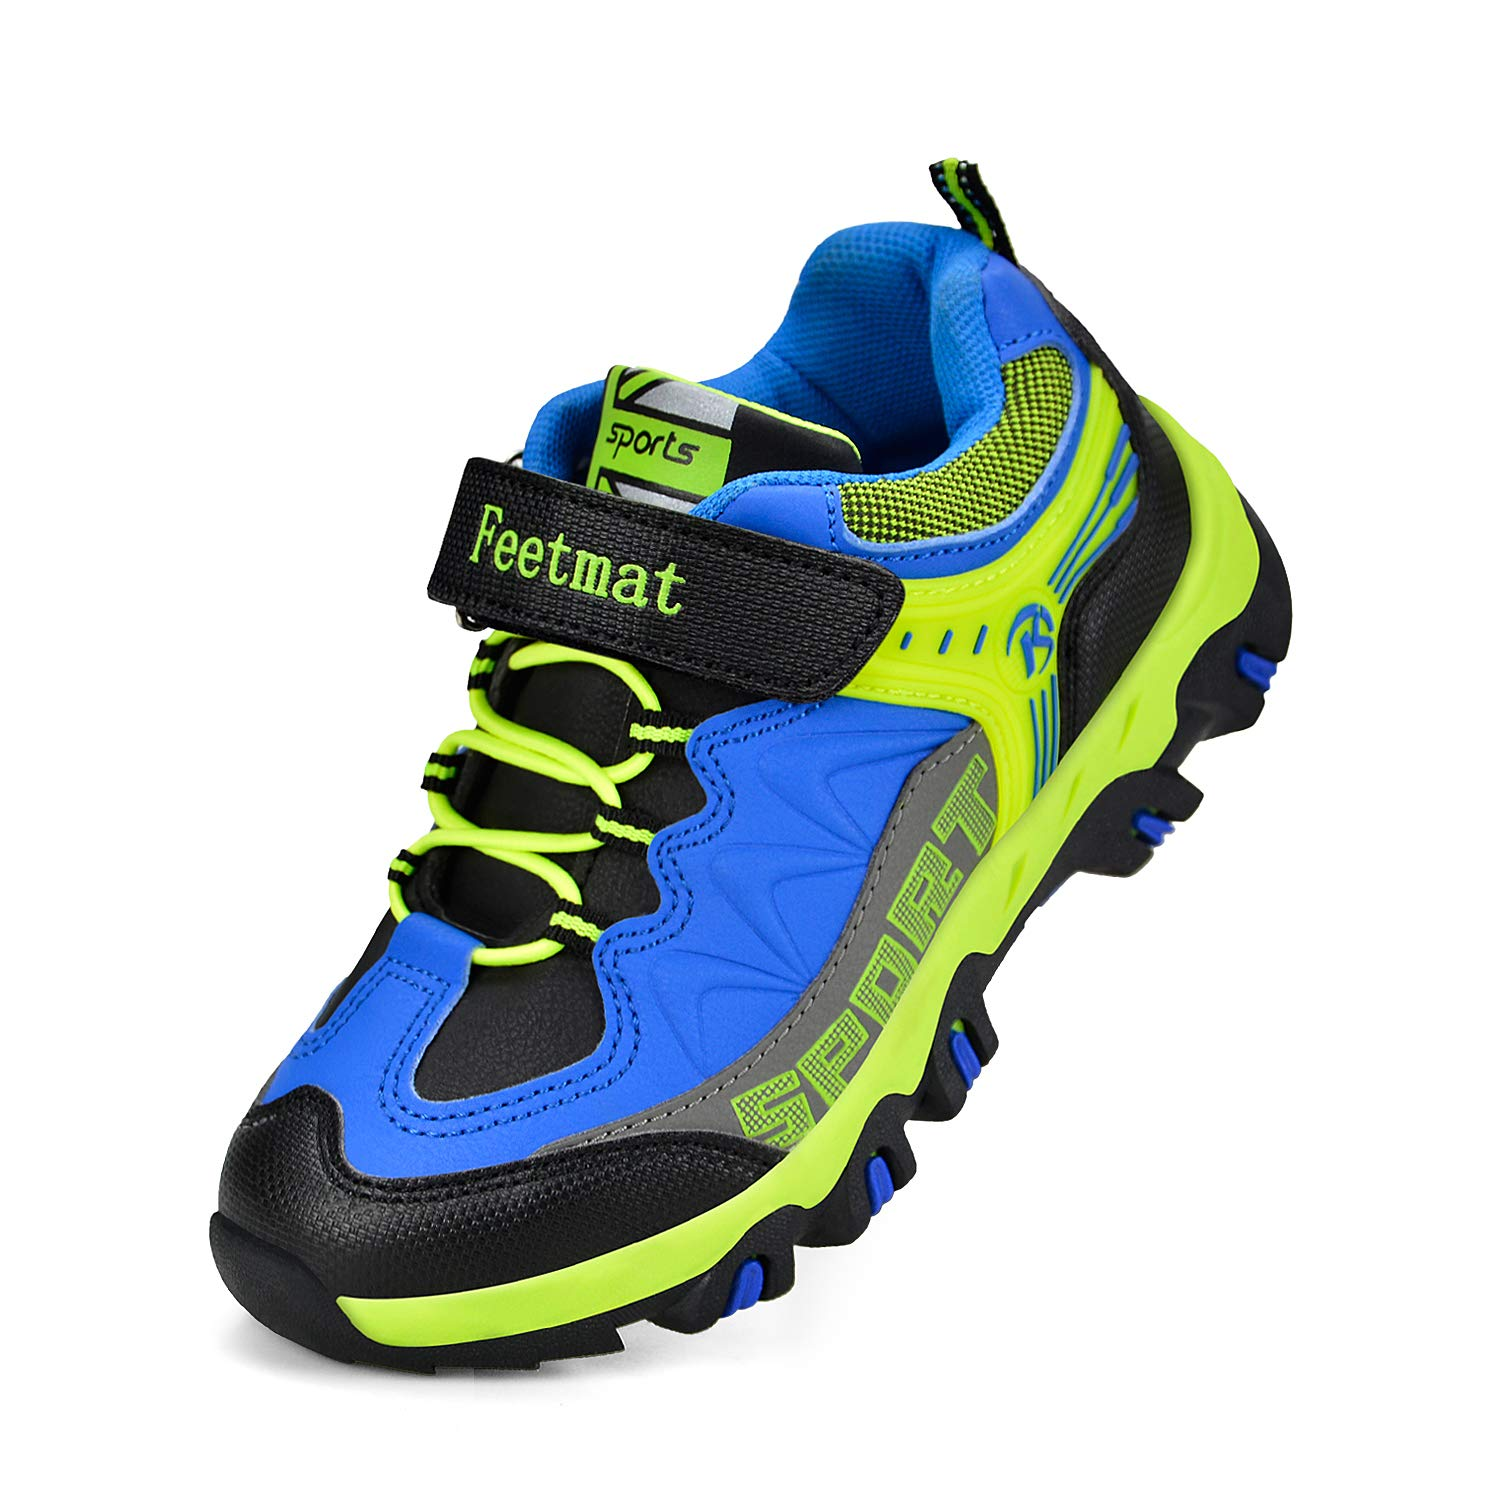 QANSI Boys Shoes Waterproof Little Kids Strap Tennis Shoes Athletic Trail Running Hiking Shoes Black//Blue 12.5